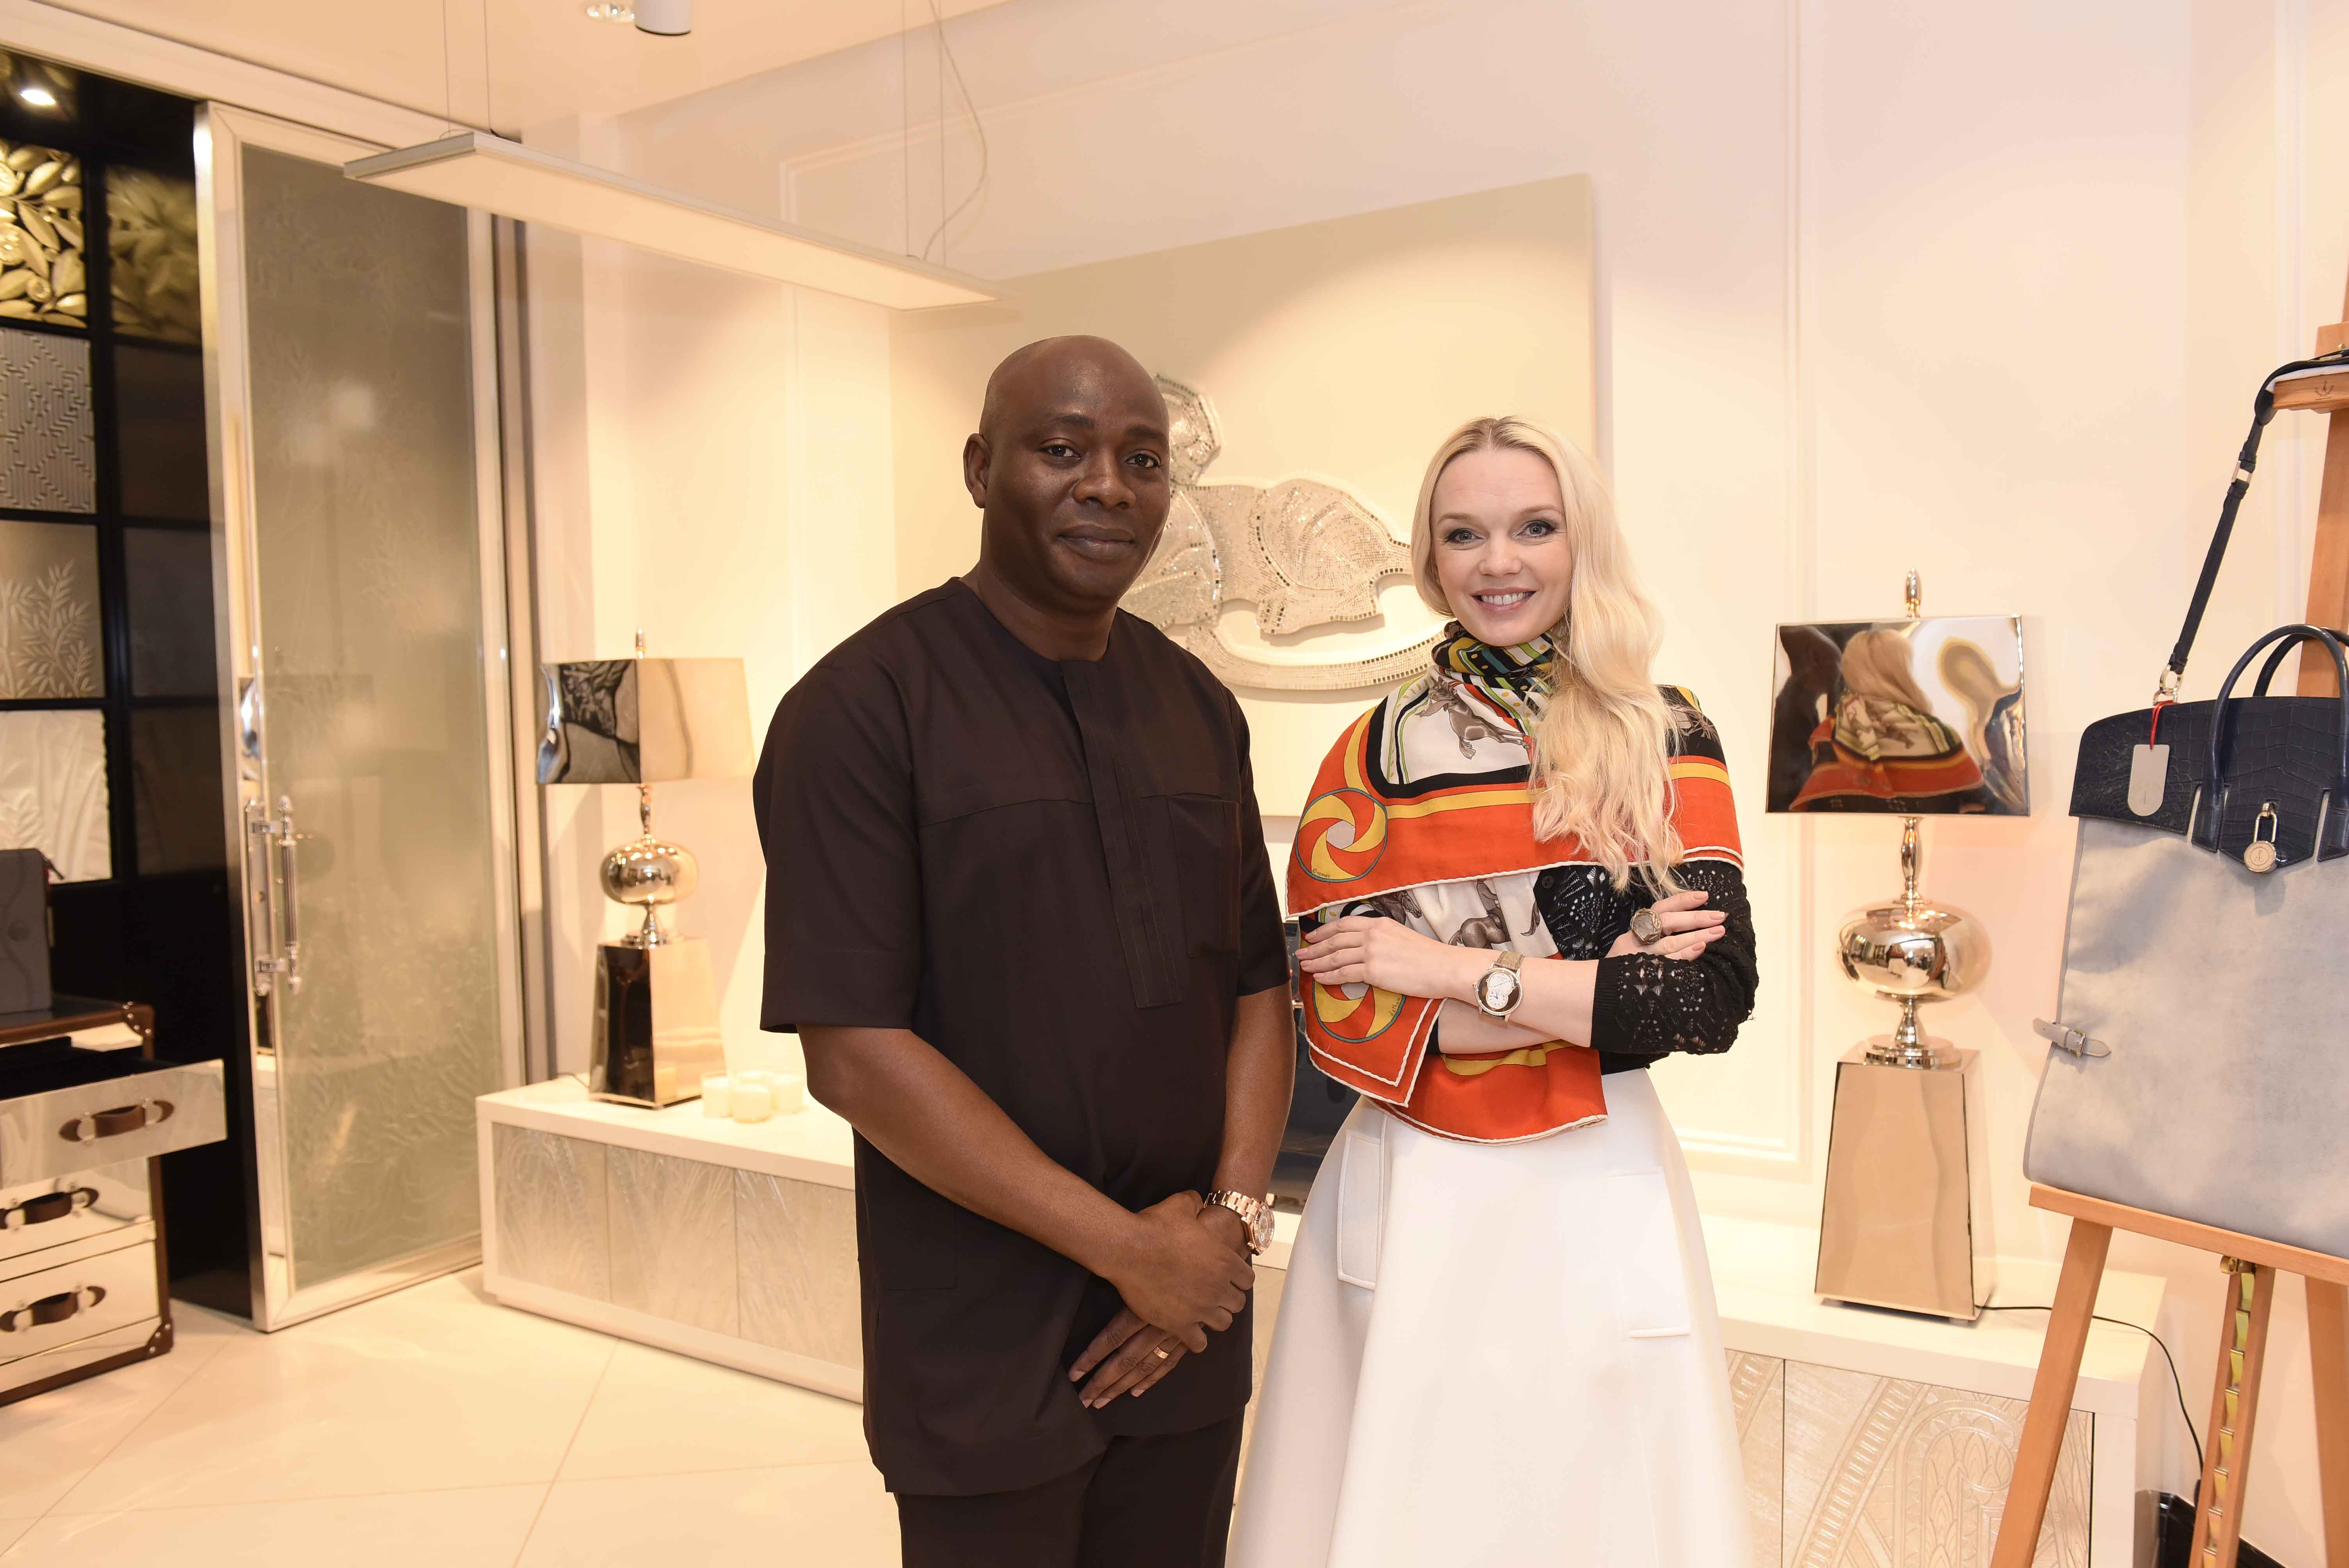 Michael-Owolabi-CEO-IL-Bagno-with-Julia-D.-Lantieri-CEO-Alter-Ego-Project-Group-at-grand-opening-of-Alter-Ego-Private-Atelier-Abuja